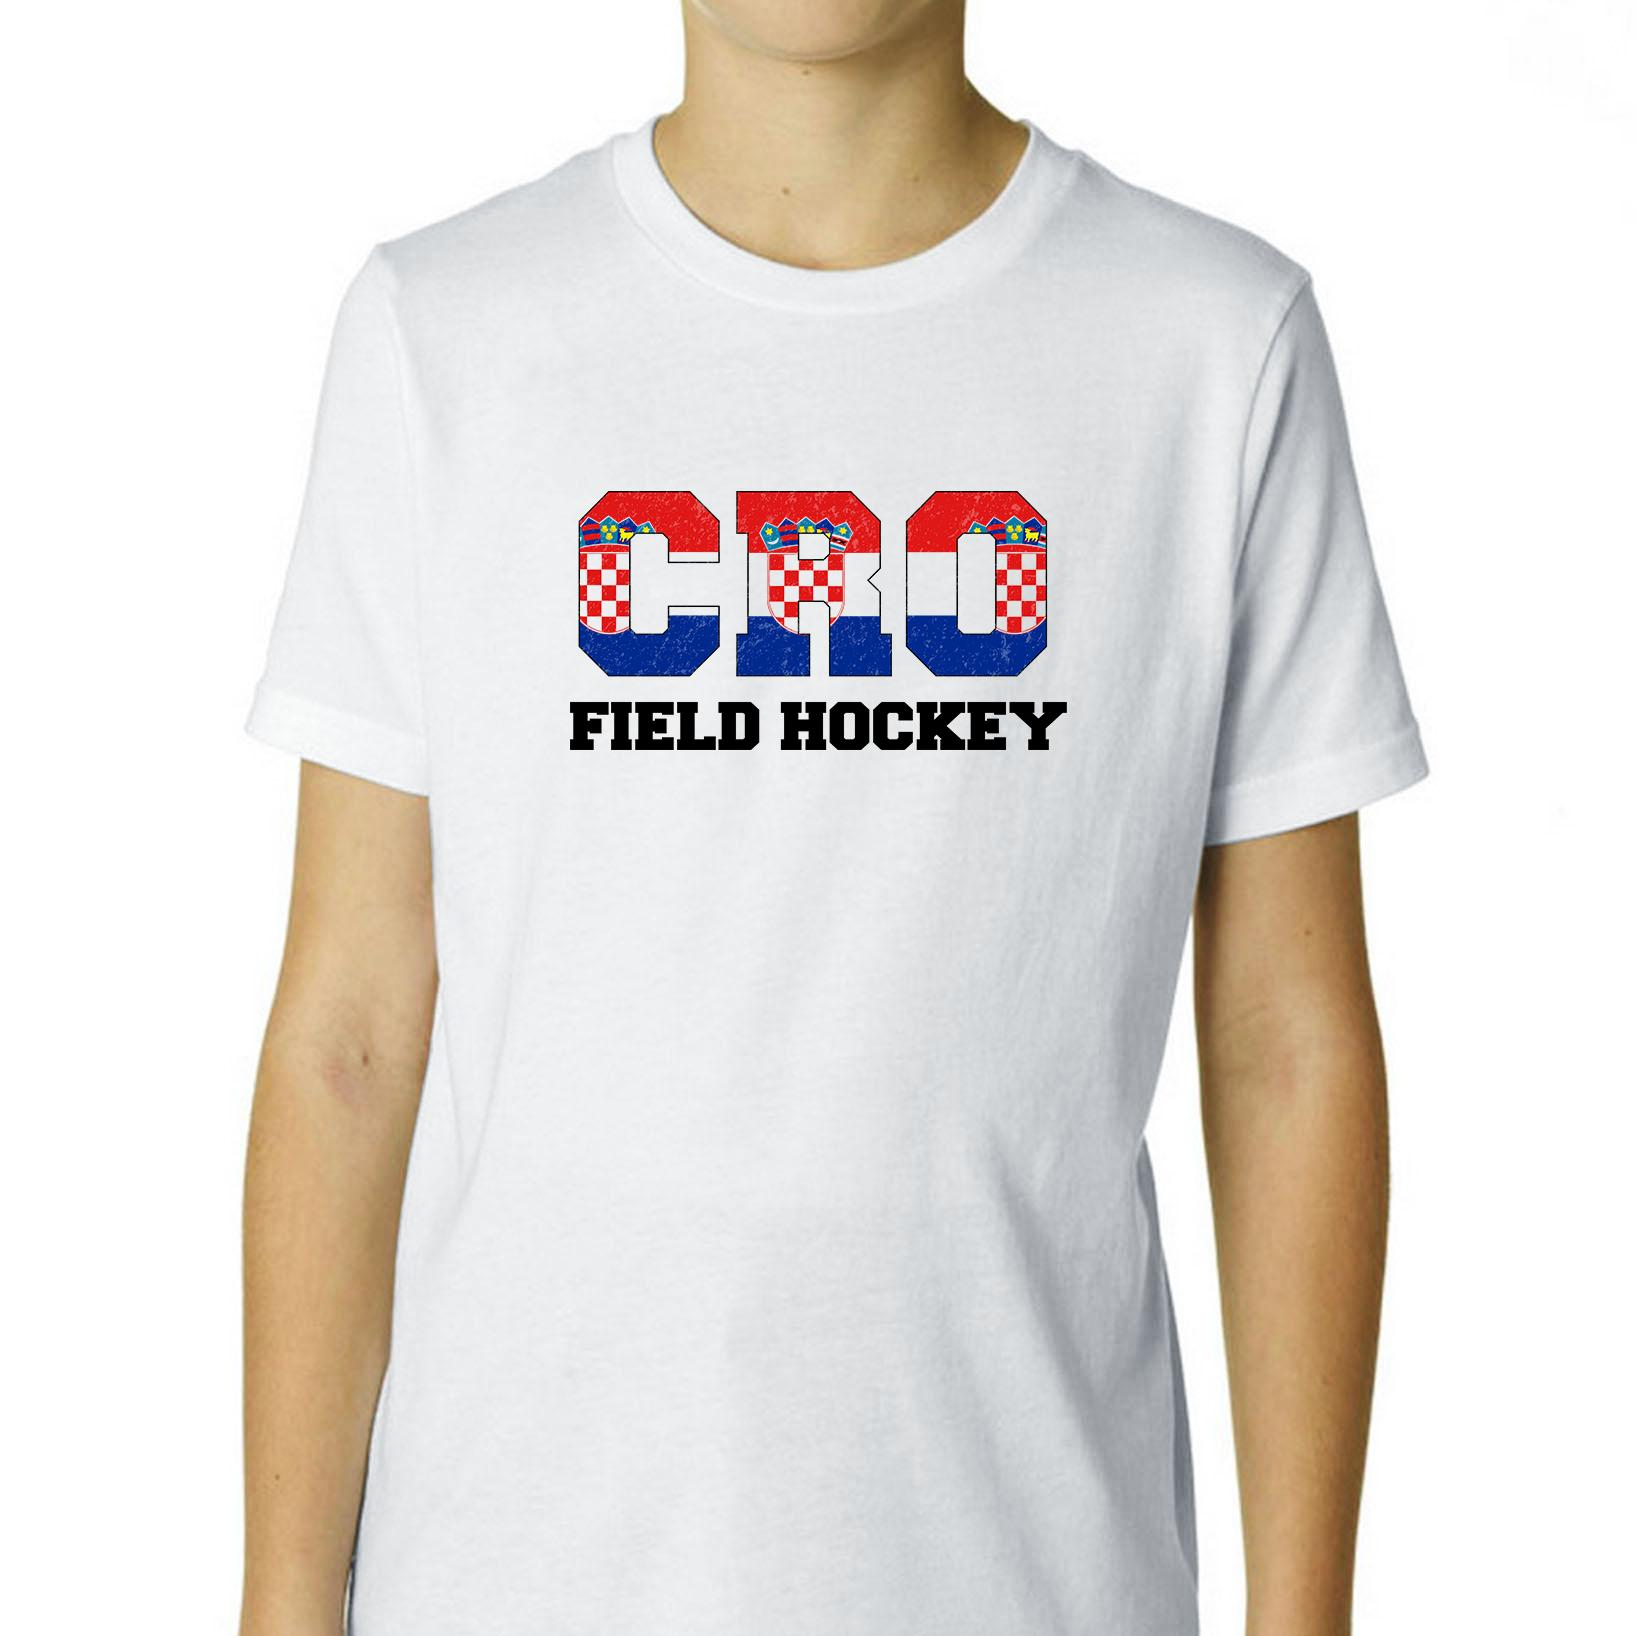 Croatia Field Hockey Olympic Games Rio Flag Boy's Cotton Youth T-Shirt by Hollywood Thread